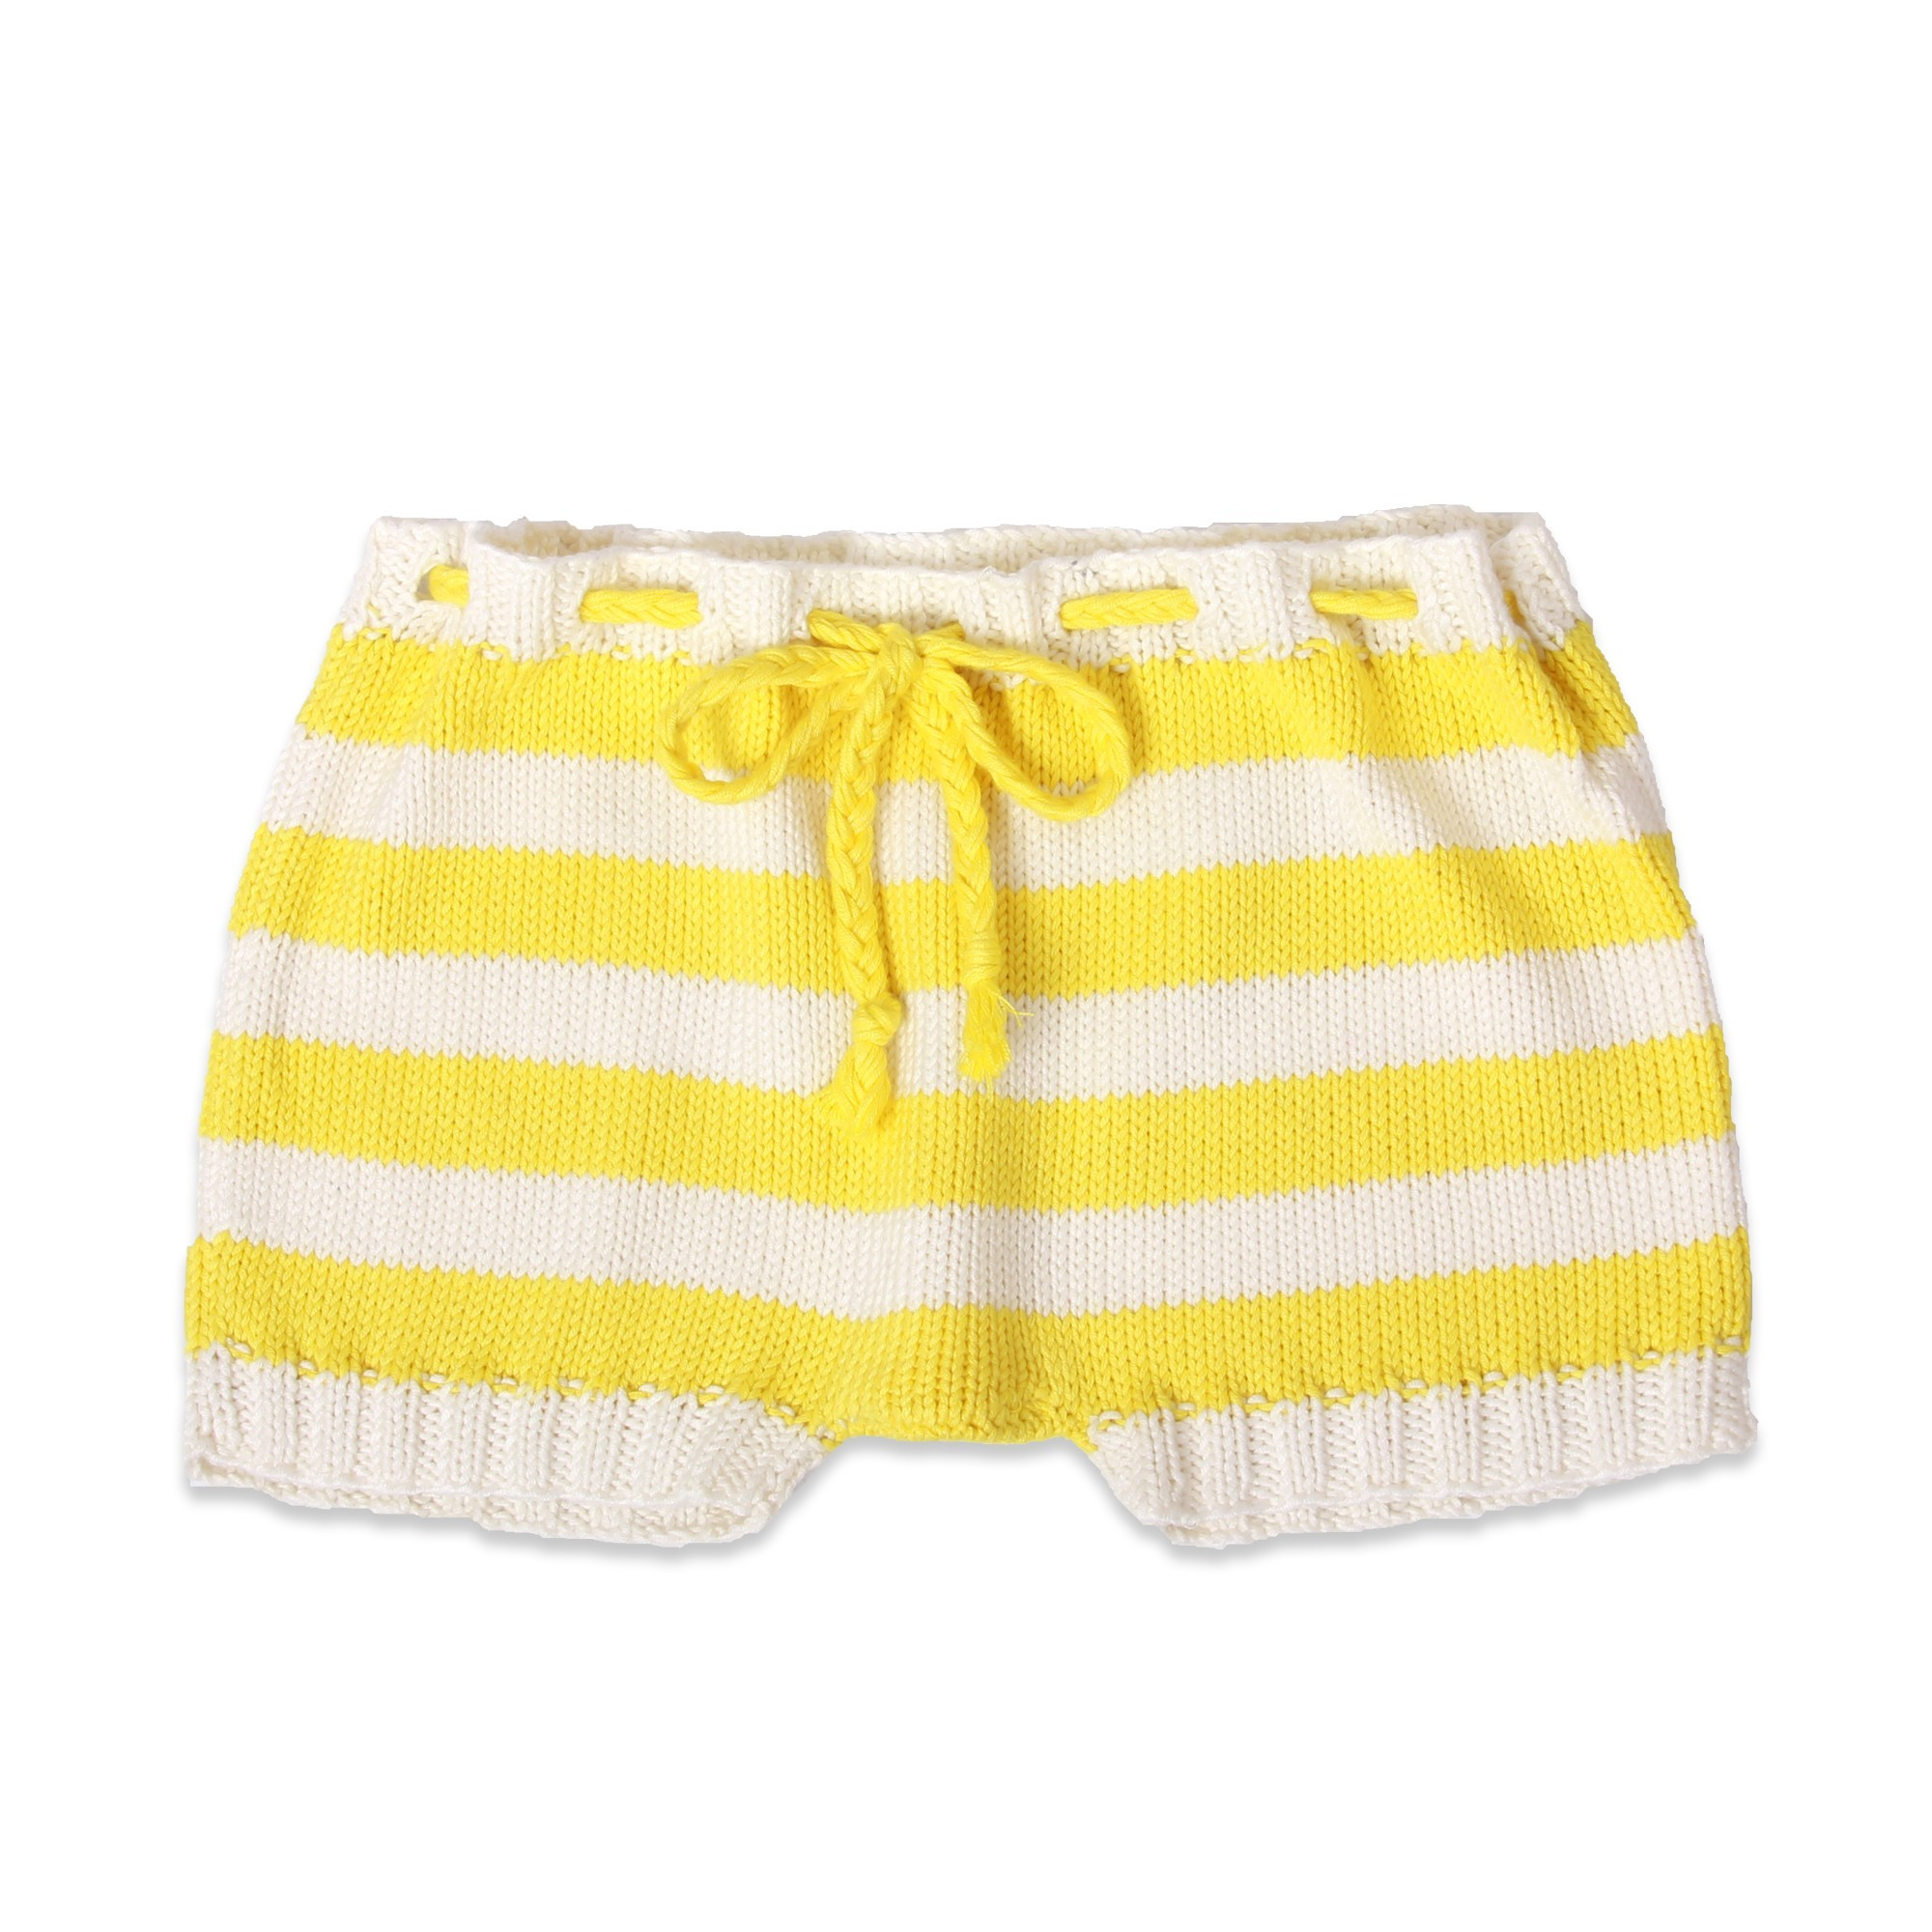 8592e444dac7 Baby pair of toddlers  shorts knitted by our grannies bamboo   cotton.